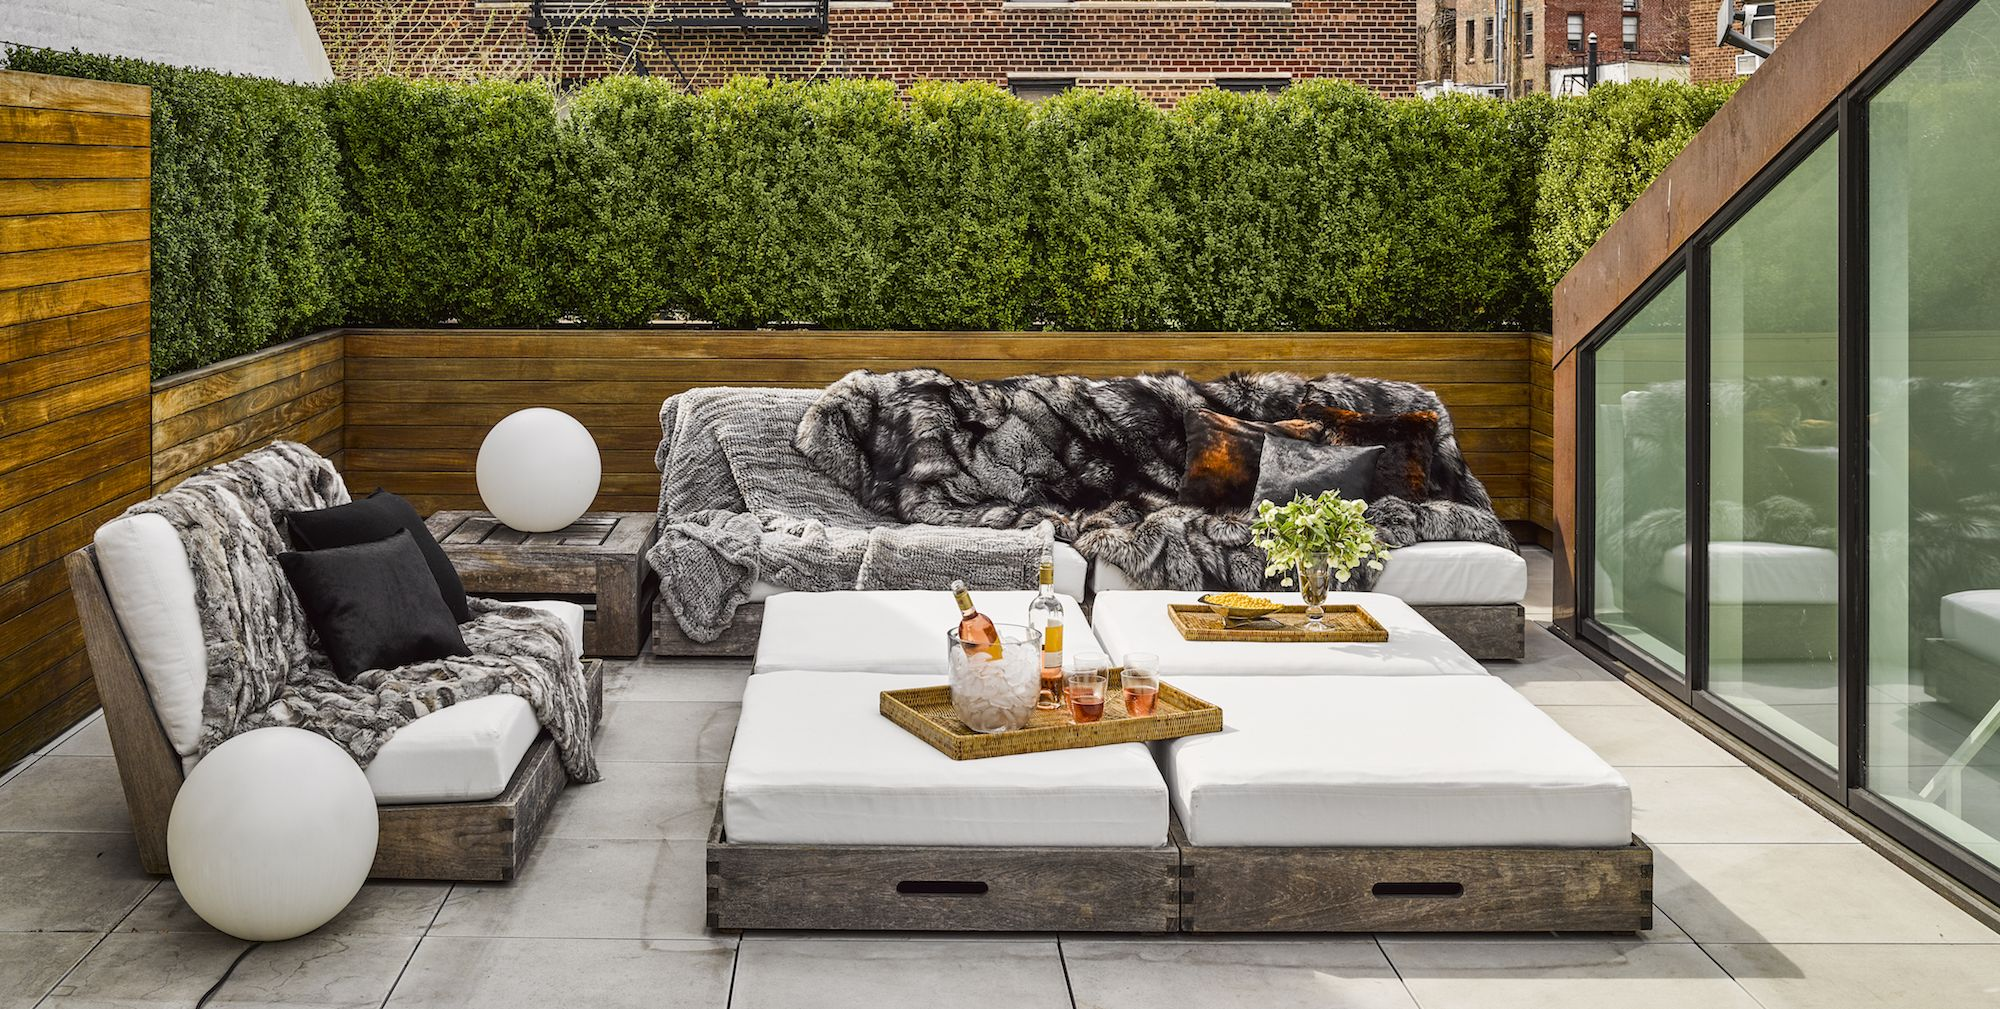 40 Best Small Patio Ideas